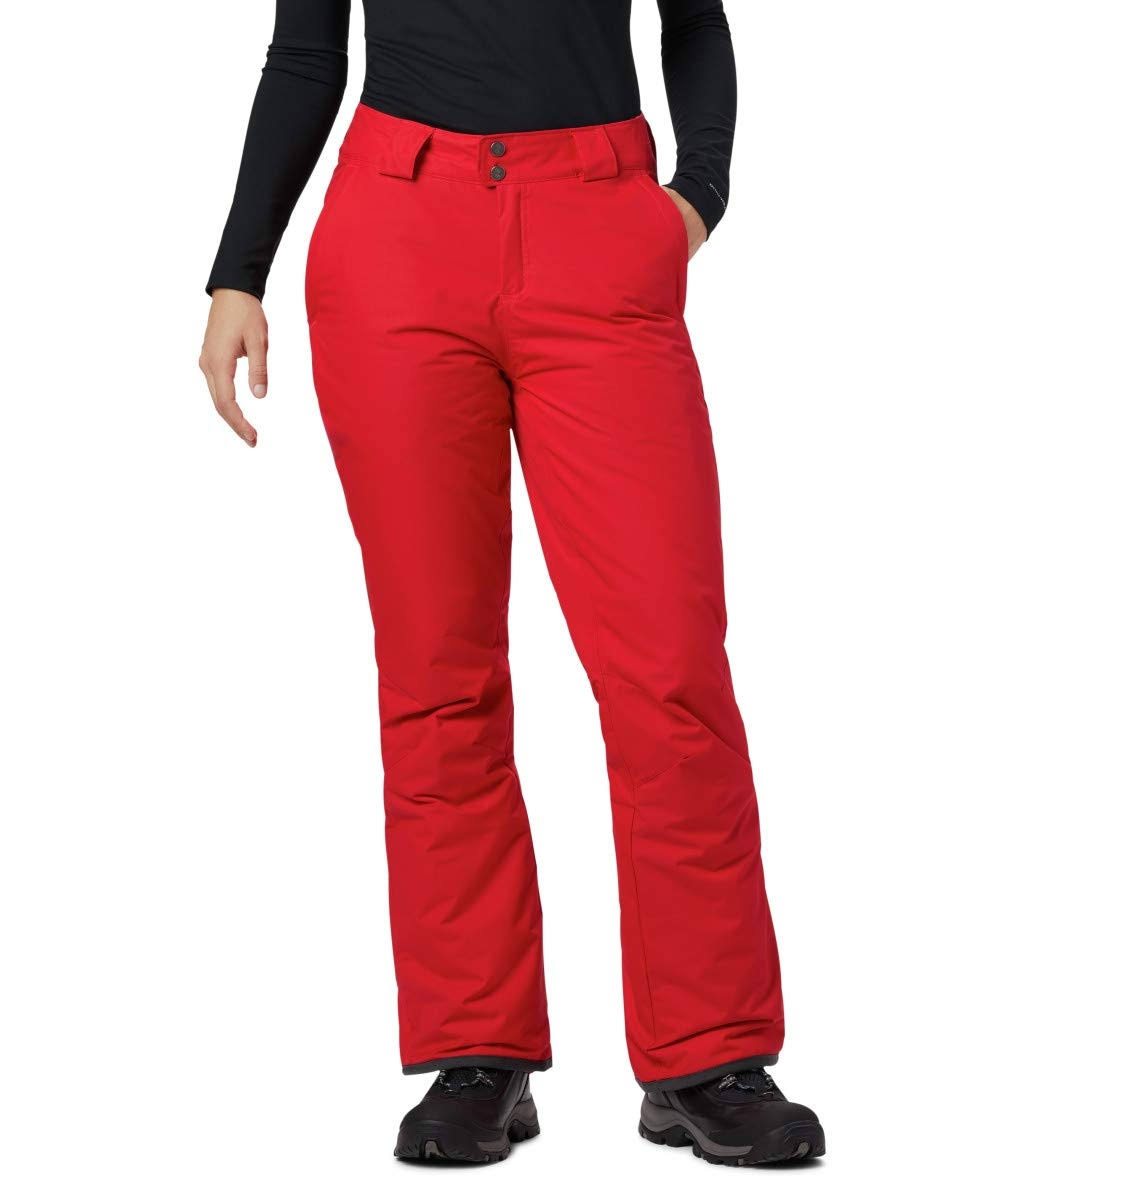 Columbia on The Slope II Snowboard Pants